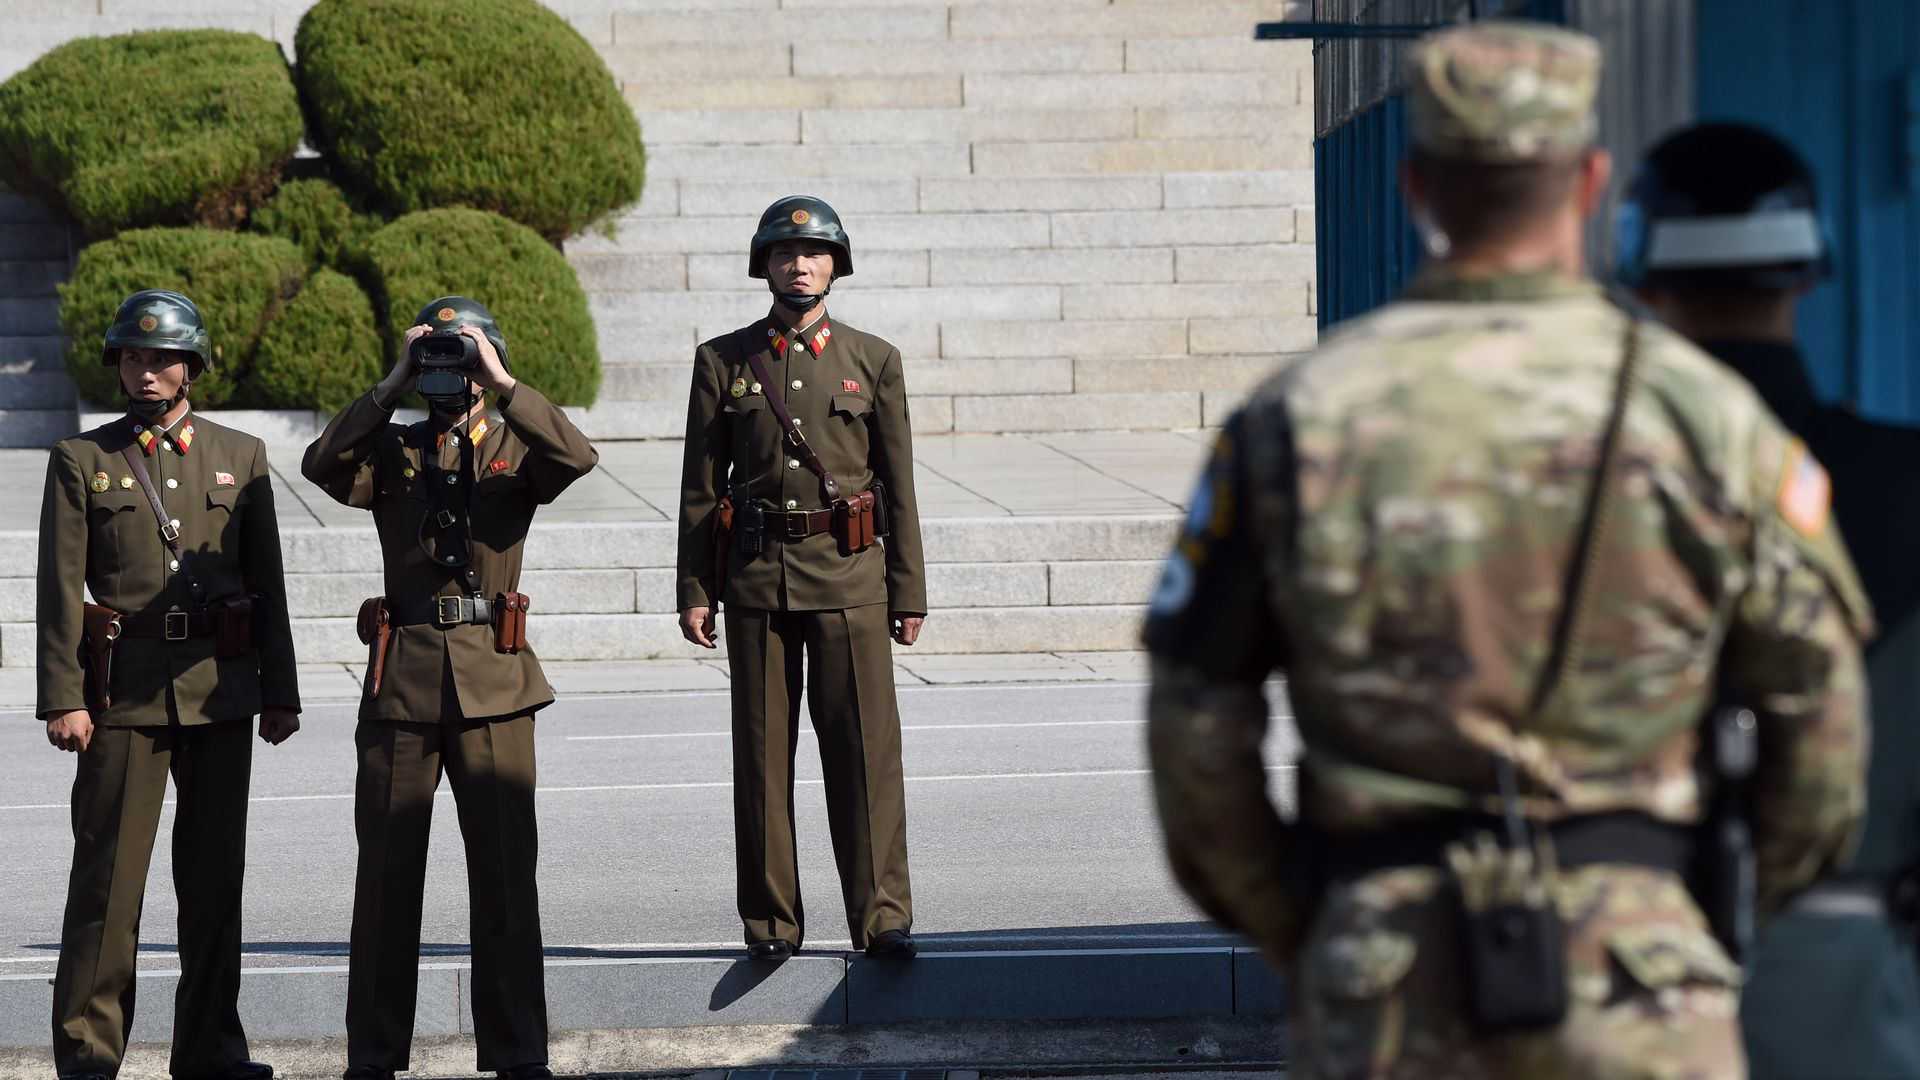 North Korean soldiers look at the South Korean side on the border between North and South Korea on October 27, 2017.